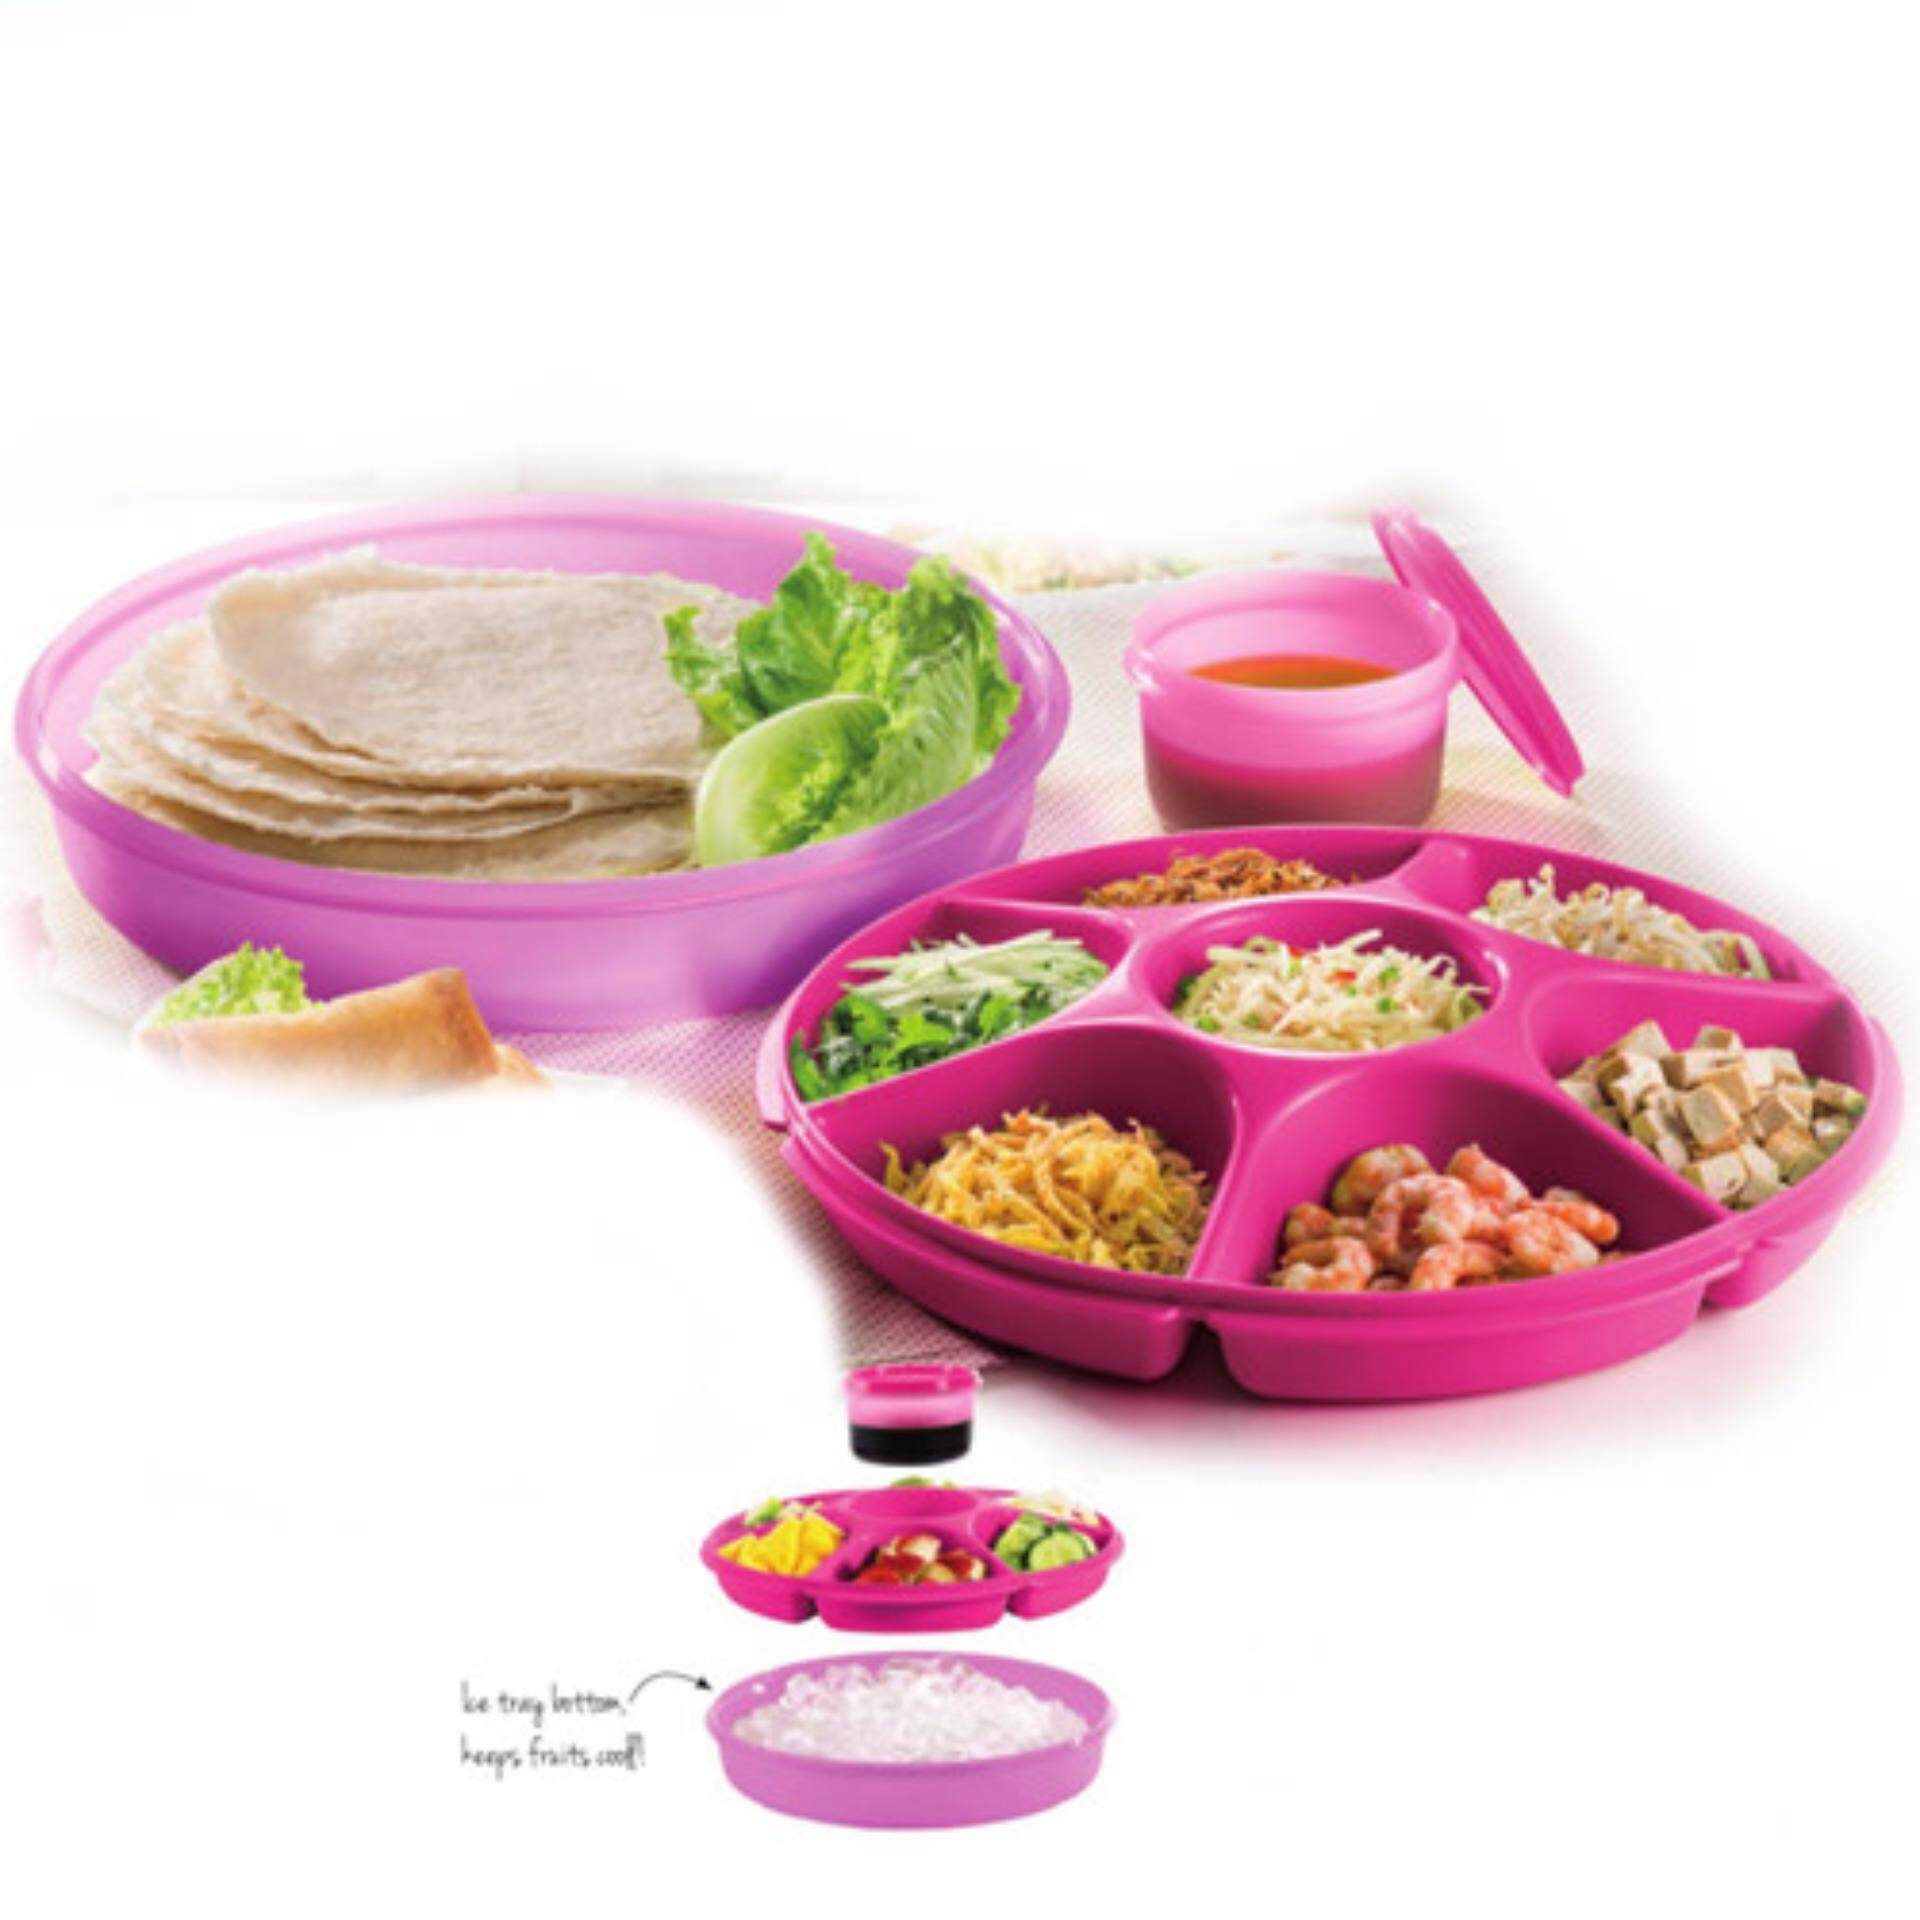 Tupperware Serving Center (1) Pink